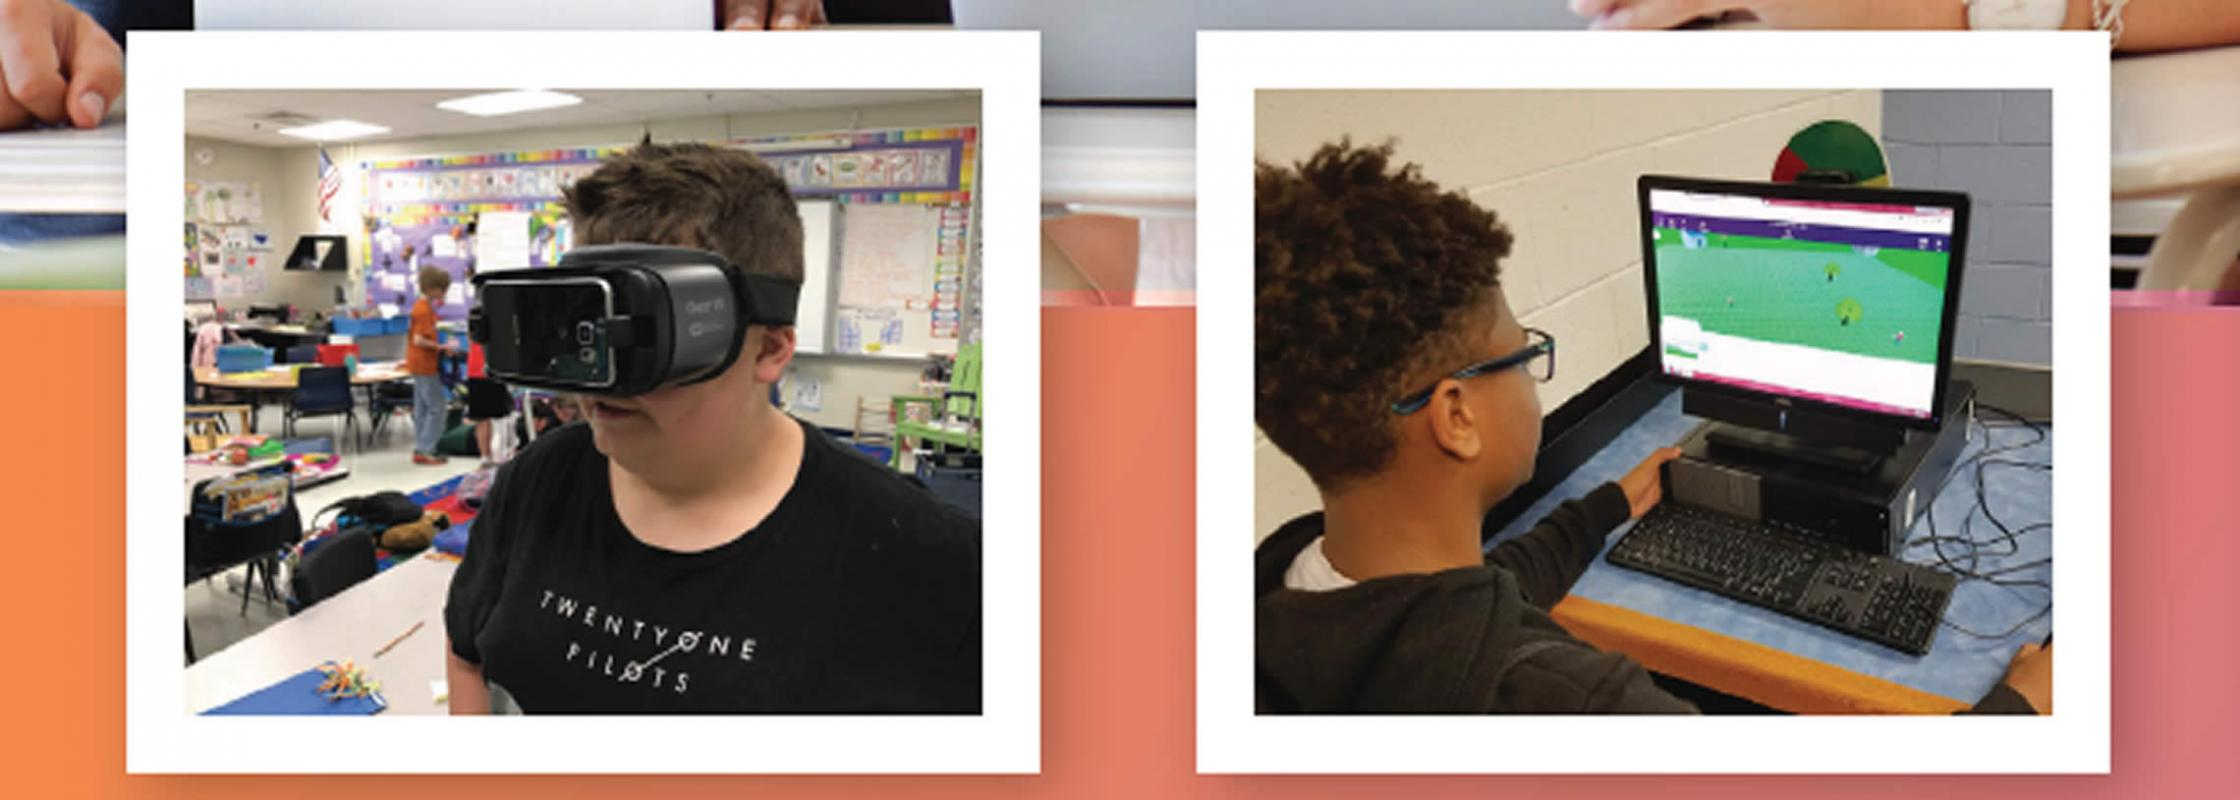 Students using virtual and augmented reality